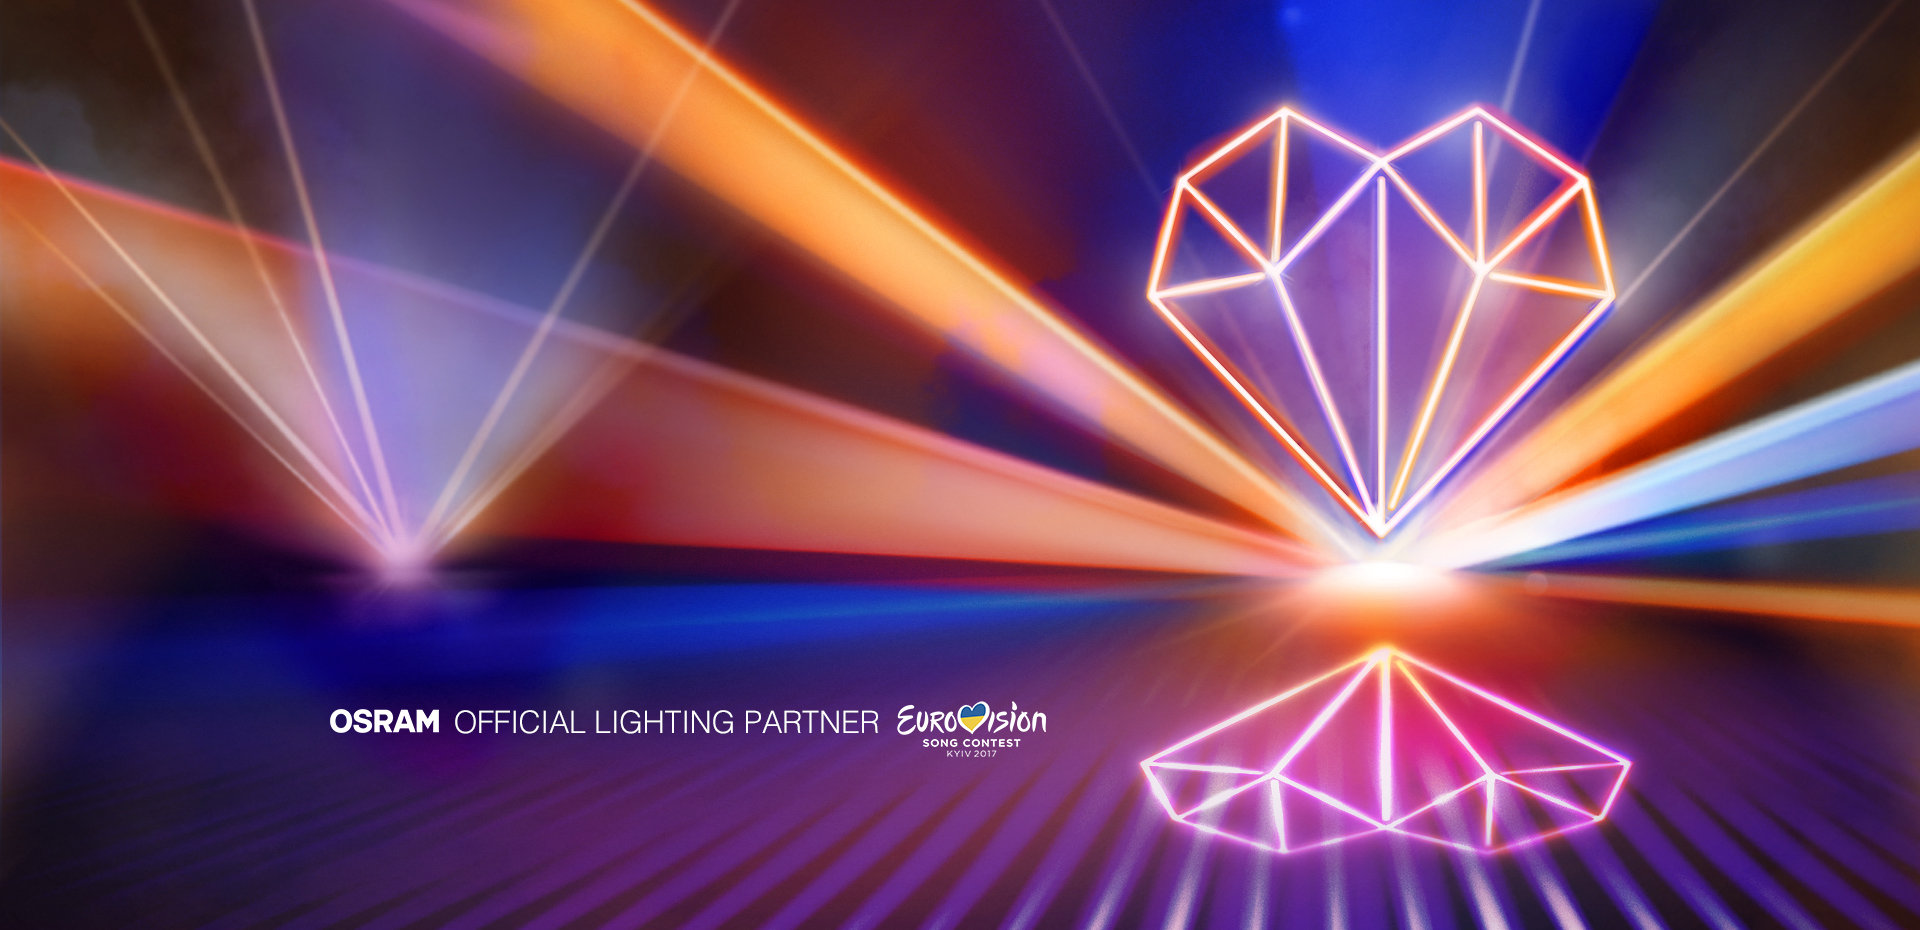 Eurovision Song Contest: Great emotions, great lightshow, light voting in Kyiv.